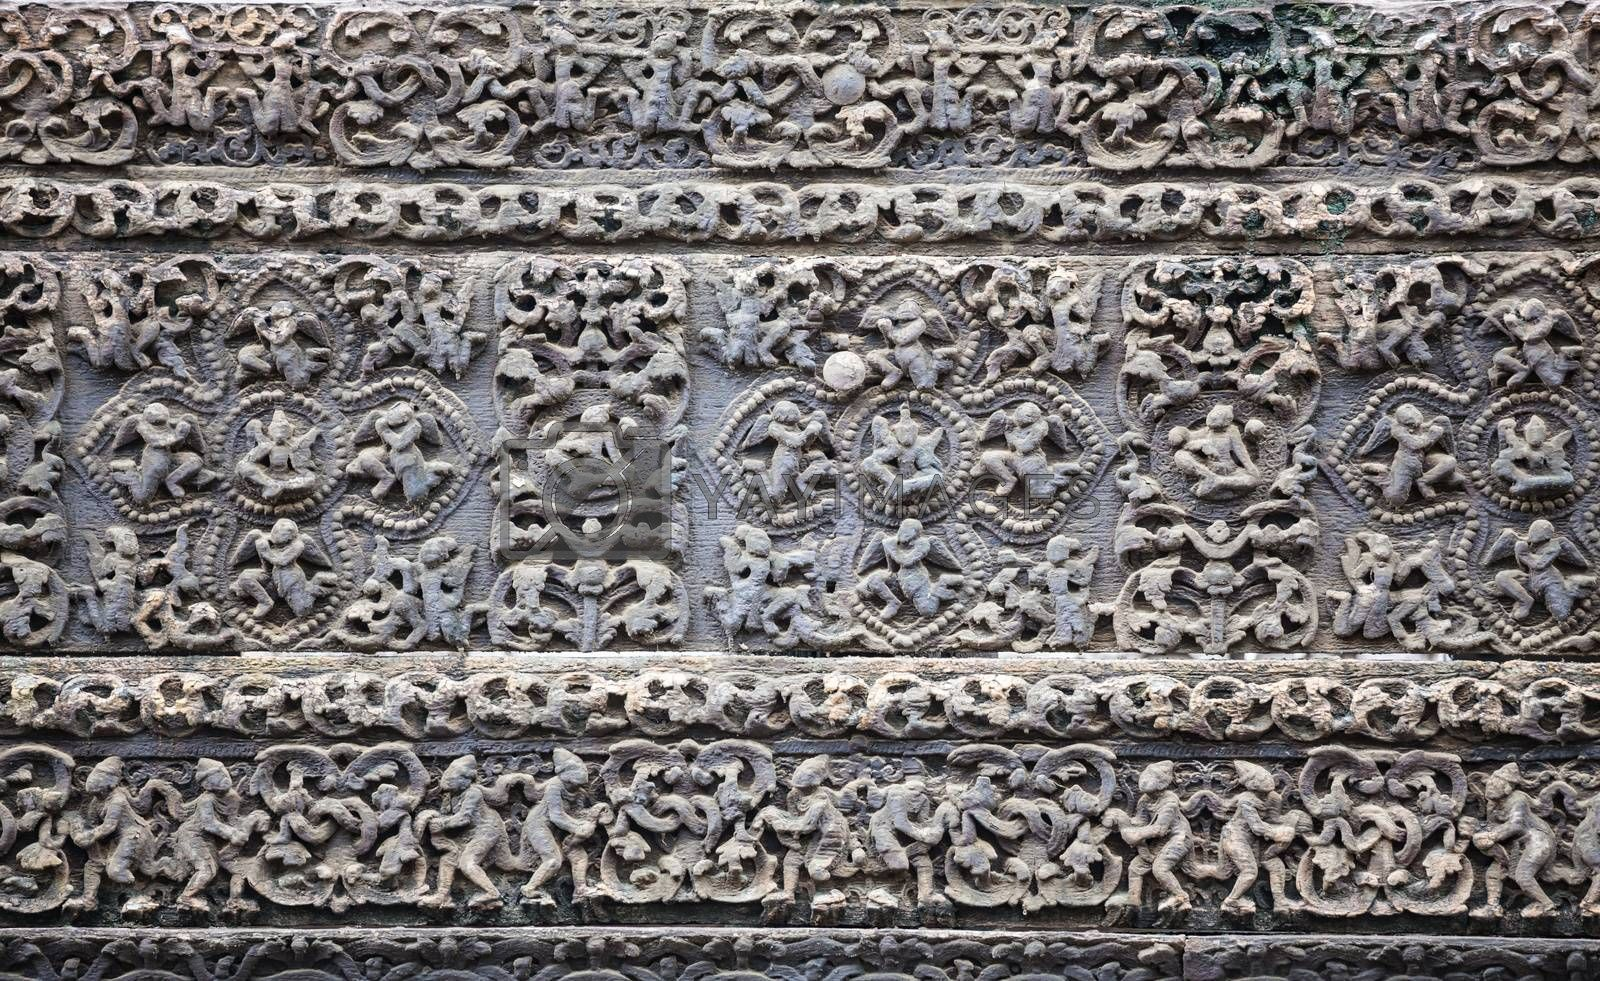 Old stone carvings on the wall temple in Myanmar